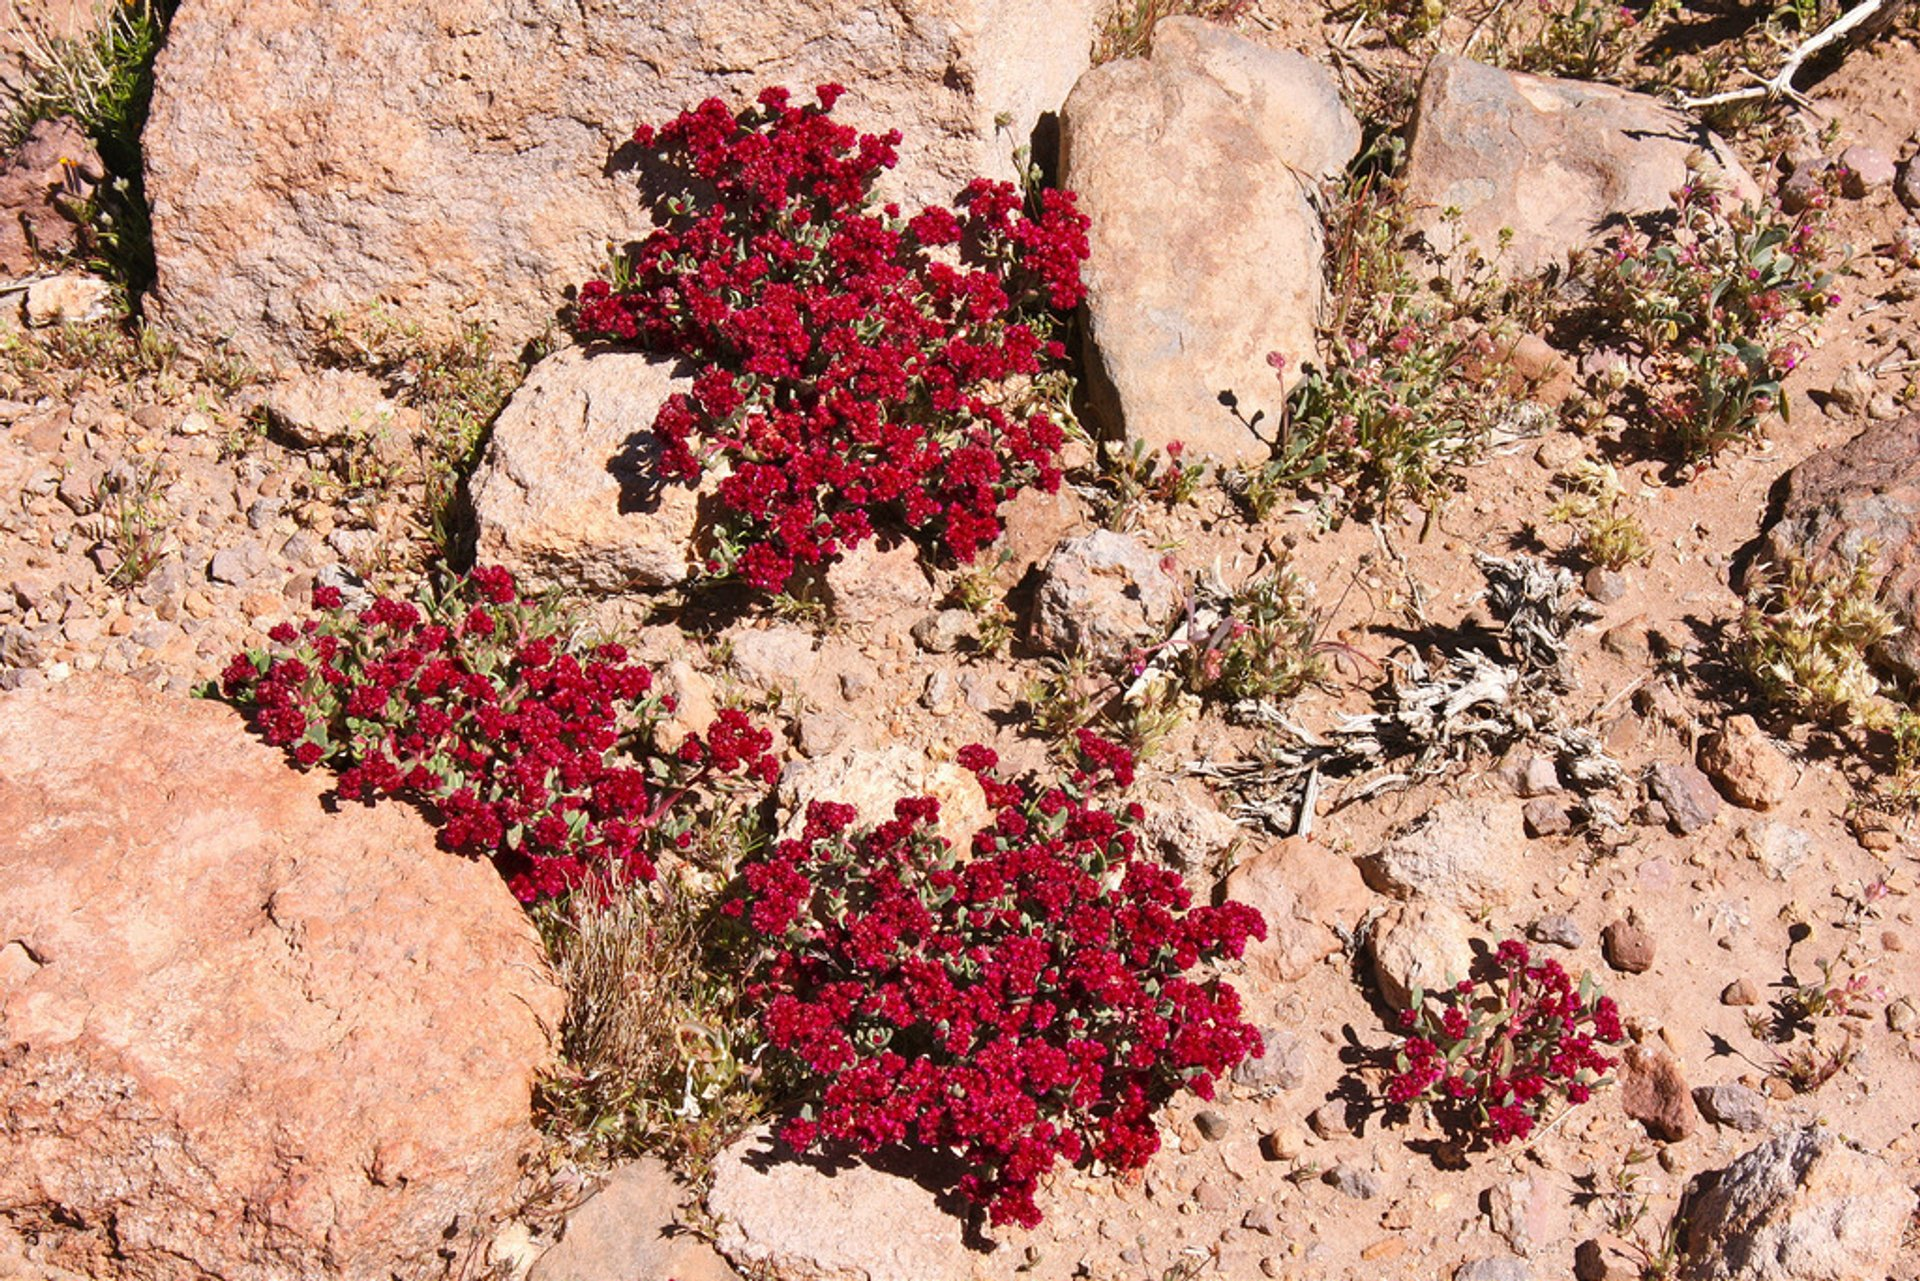 Wild Flowers in Bolivia 2020 - Best Time